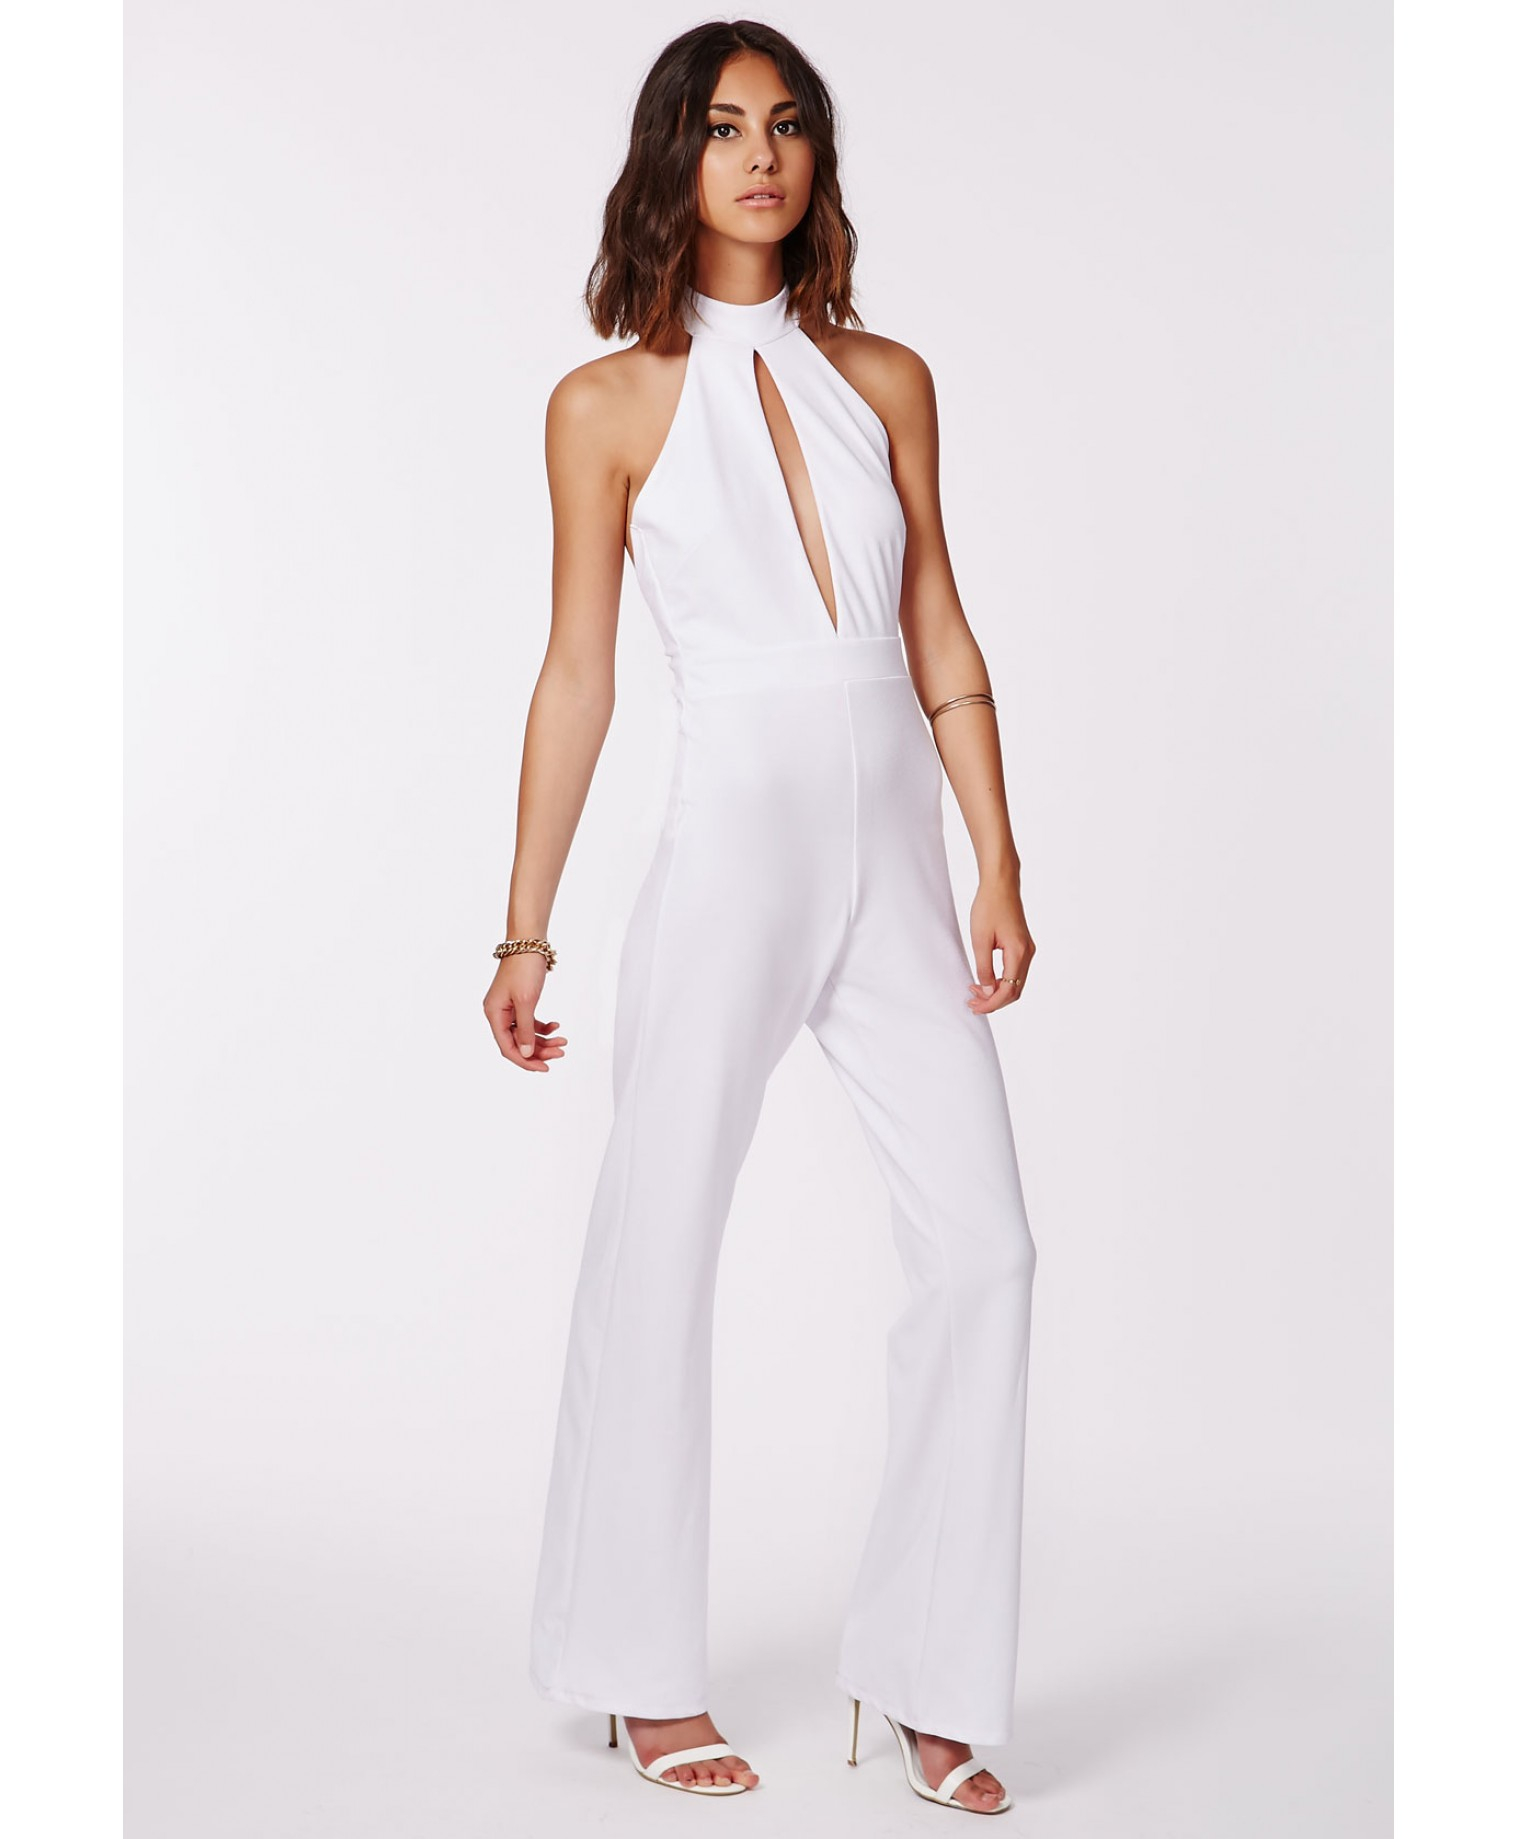 780897e4b60 Lyst - Missguided Milka White Halterneck Keyhole Jumpsuit in White